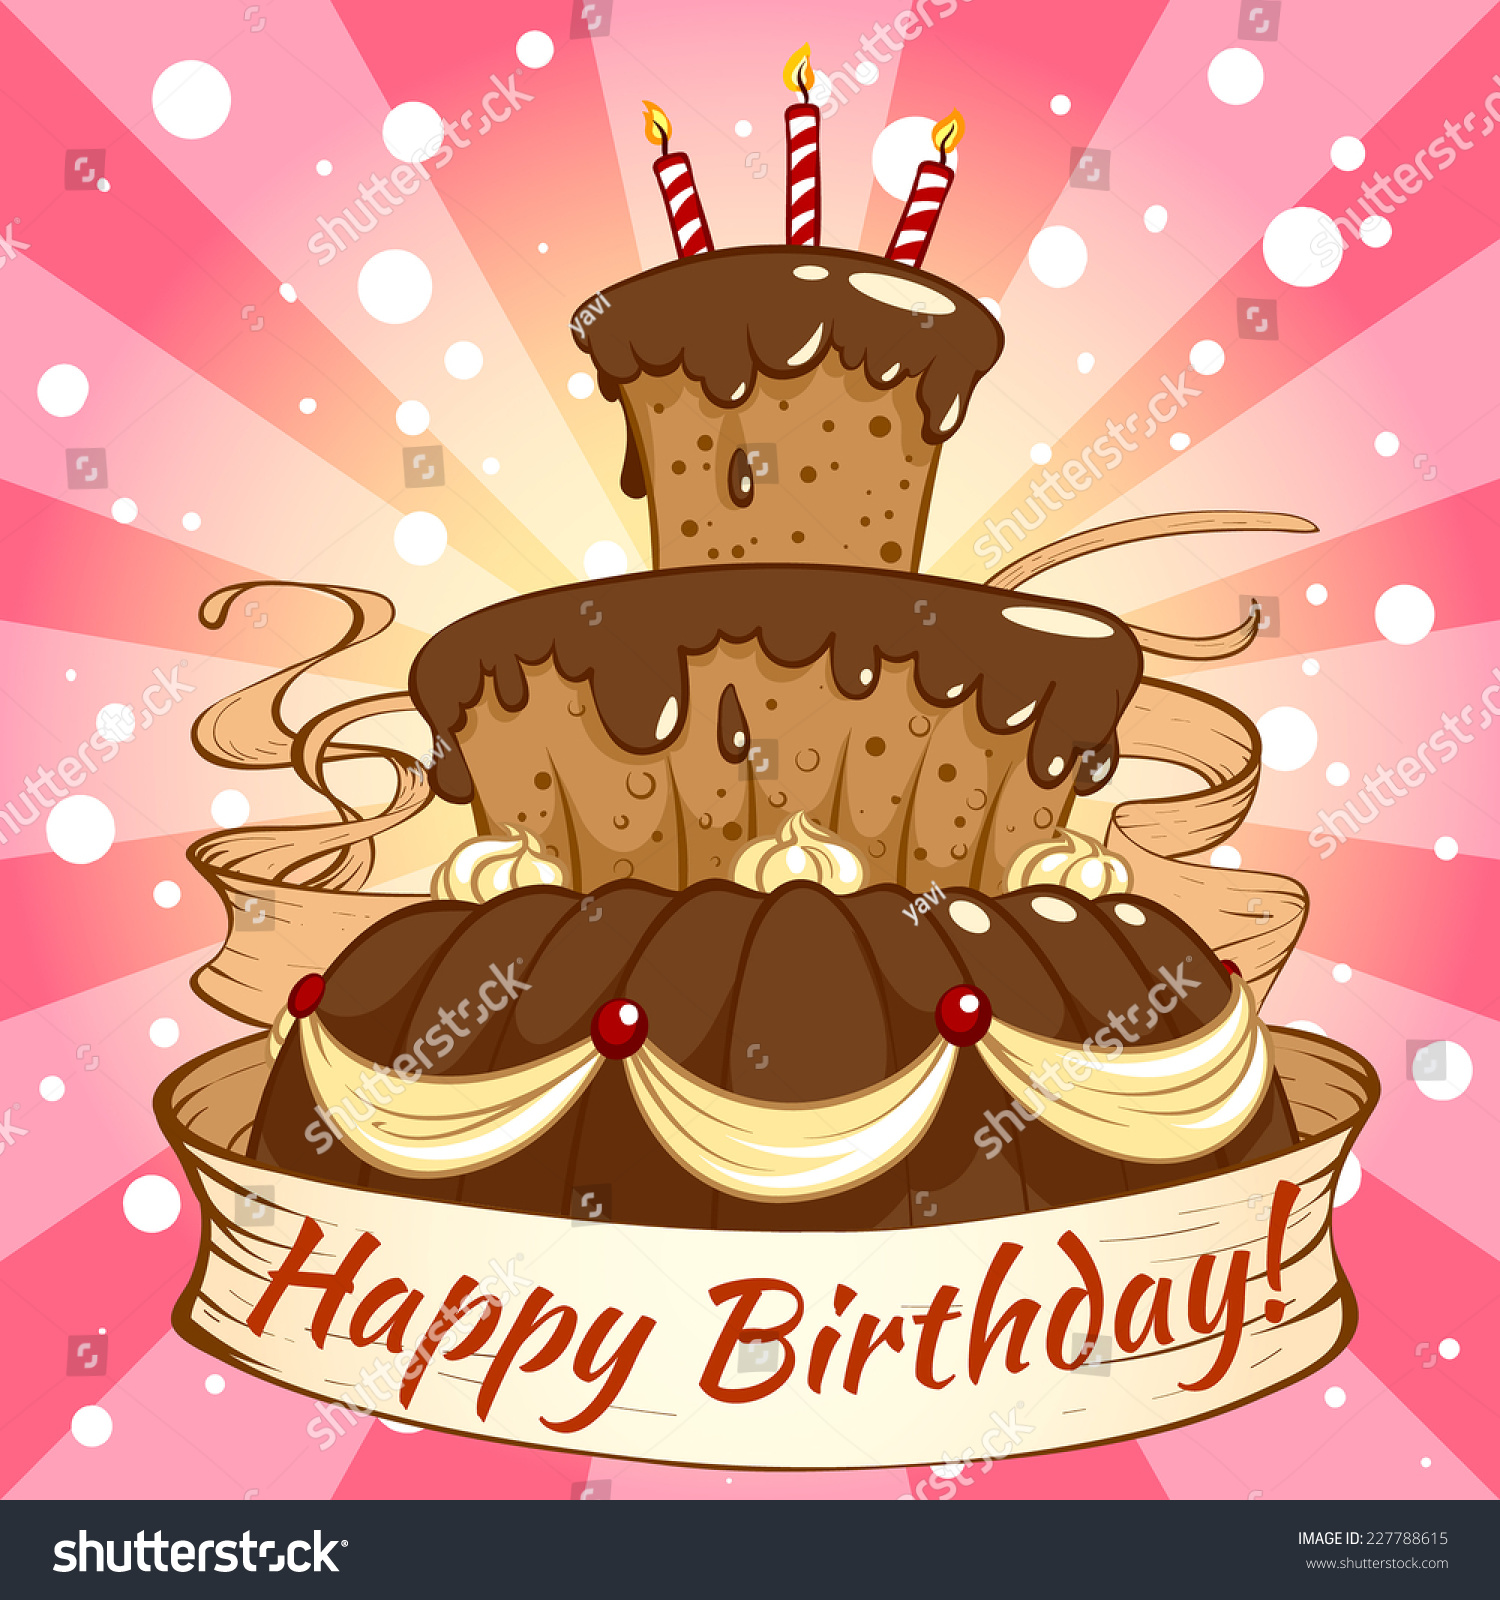 Birthday card big chocolate cake on stock vector 227788615 birthday card with a big chocolate cake on a pink background template card for birthday kristyandbryce Image collections